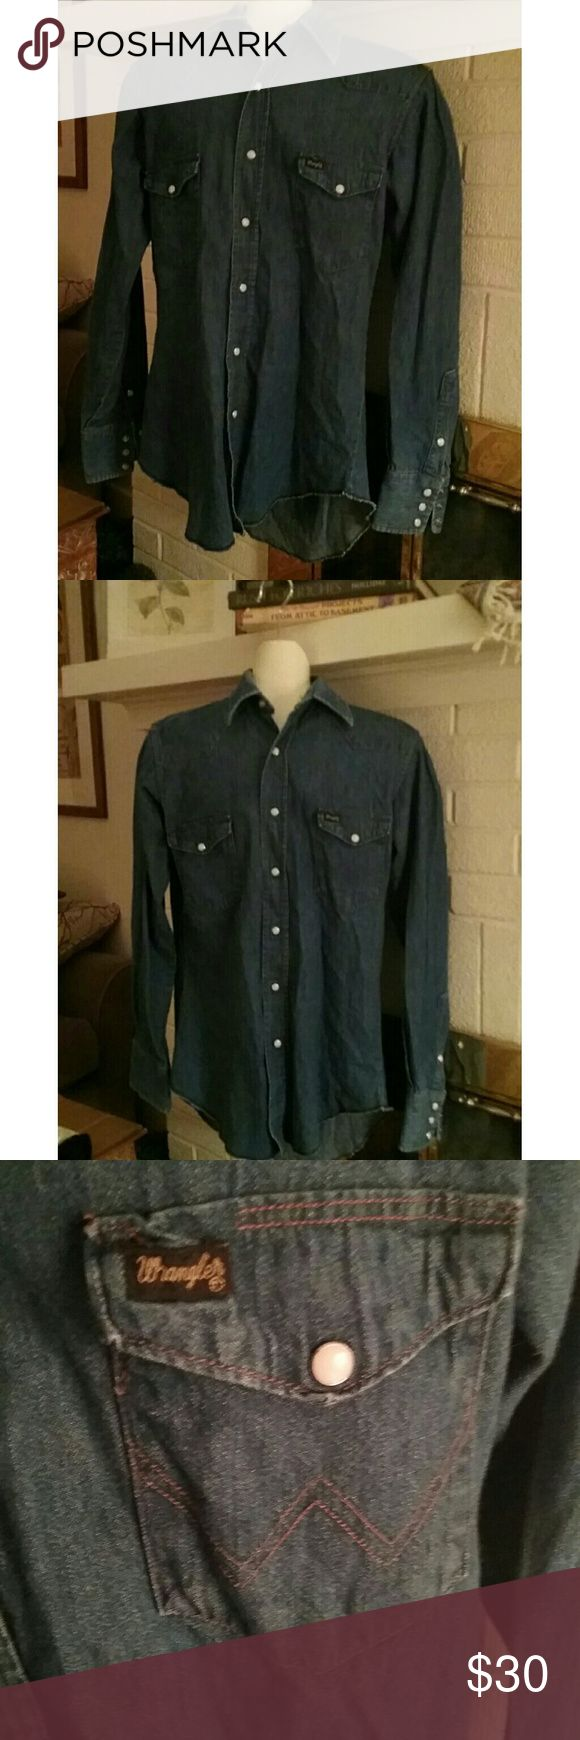 Vintage 1973 Wrangler shirt Bluer than photograph. Great condition. Made in USA. Pearl buttons. Extra long tails. Great color and condition. Size 15 ? 34 mens work shirt. Would fit small to large womans size, probably not extra large. Really, really nice shirt. Vintage Wrangler Shirts